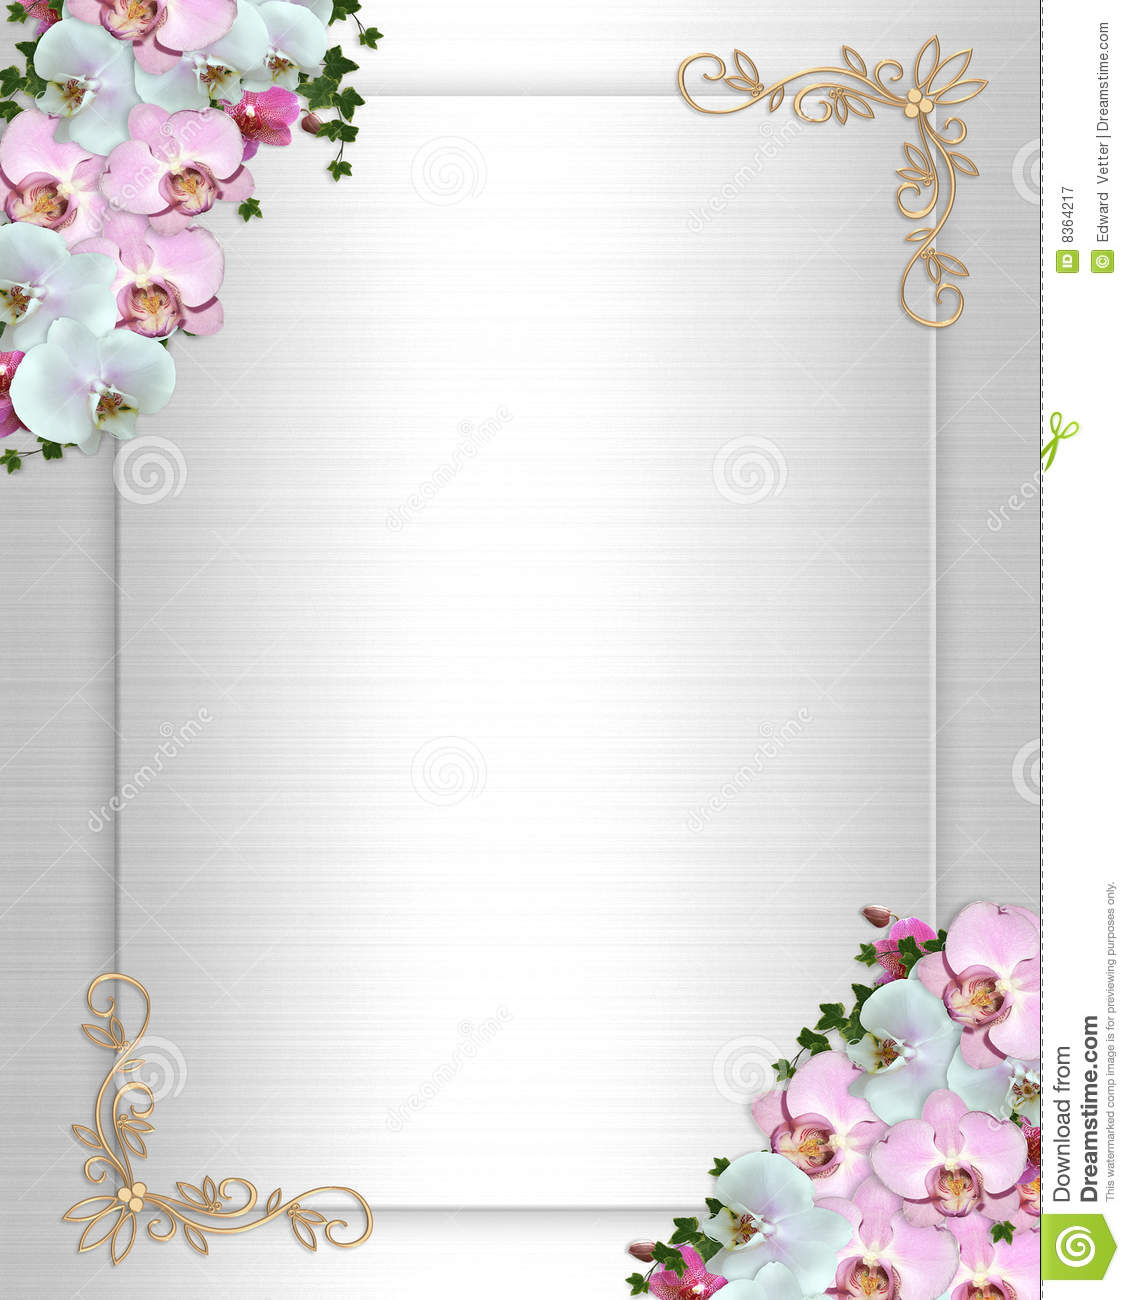 Wedding Invite Borders: Wedding Invitation Border Orchids Ivy Royalty Free Stock